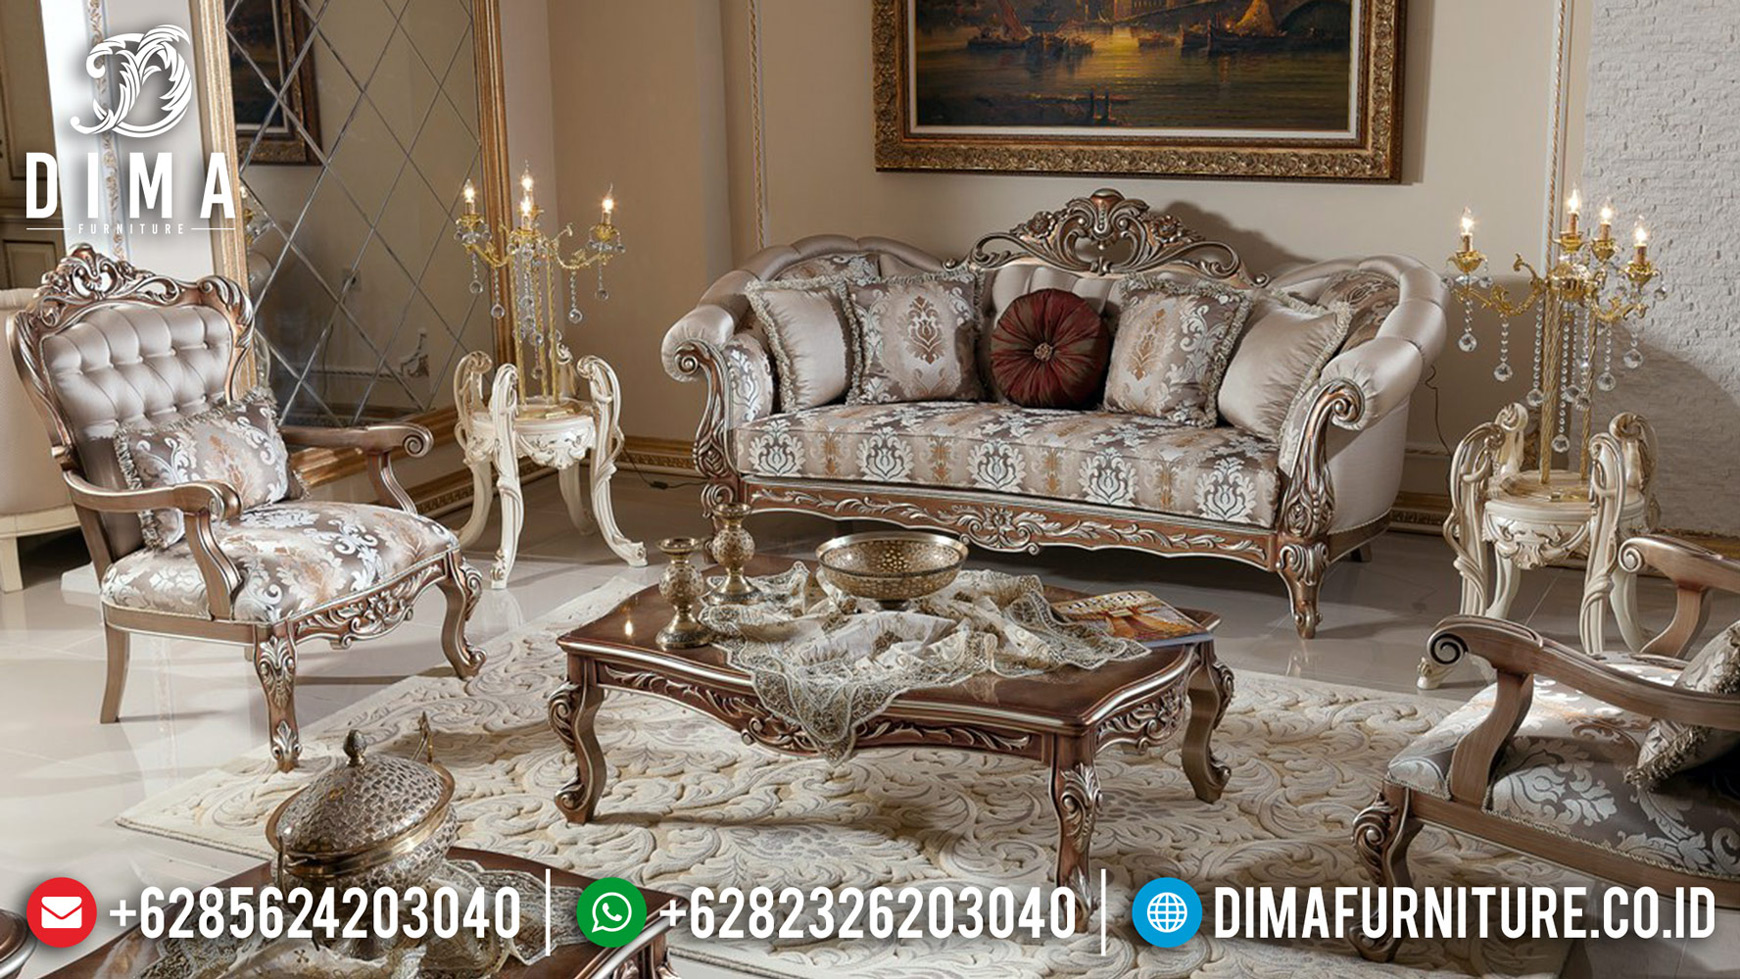 New Models Sofa Tamu Mewah Ukiran Luxury Natural Jati Jepara Best Price BT-0651